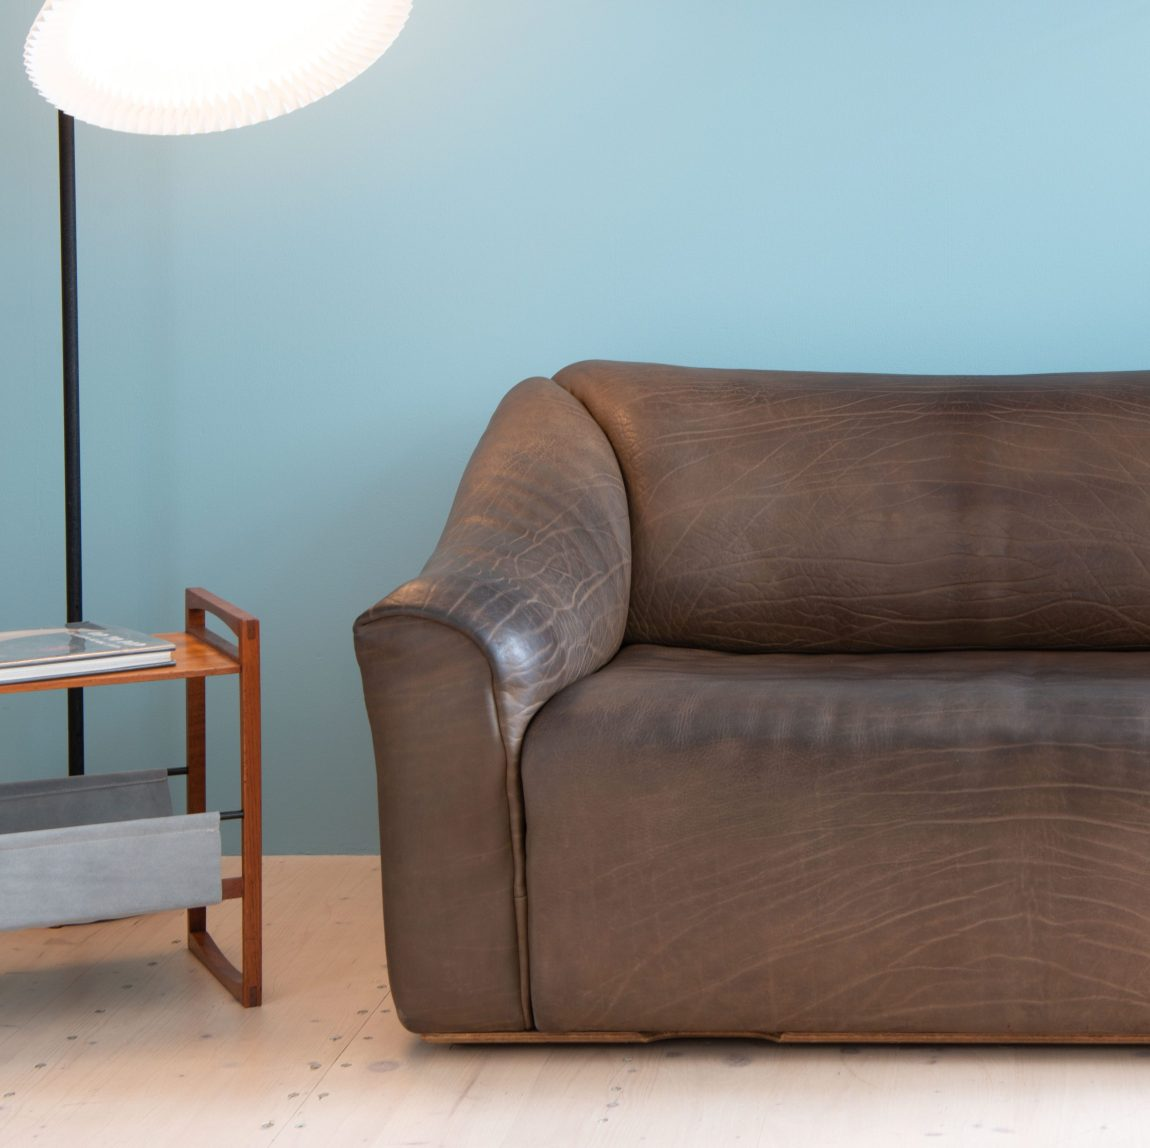 Vintage De Sede Sofa in Buffalo Leather. Classic Swiss Design. Available at heyday möbel, Grubenstrasse 19, 8045 Zürich, Switzerland. Mid-century modern.